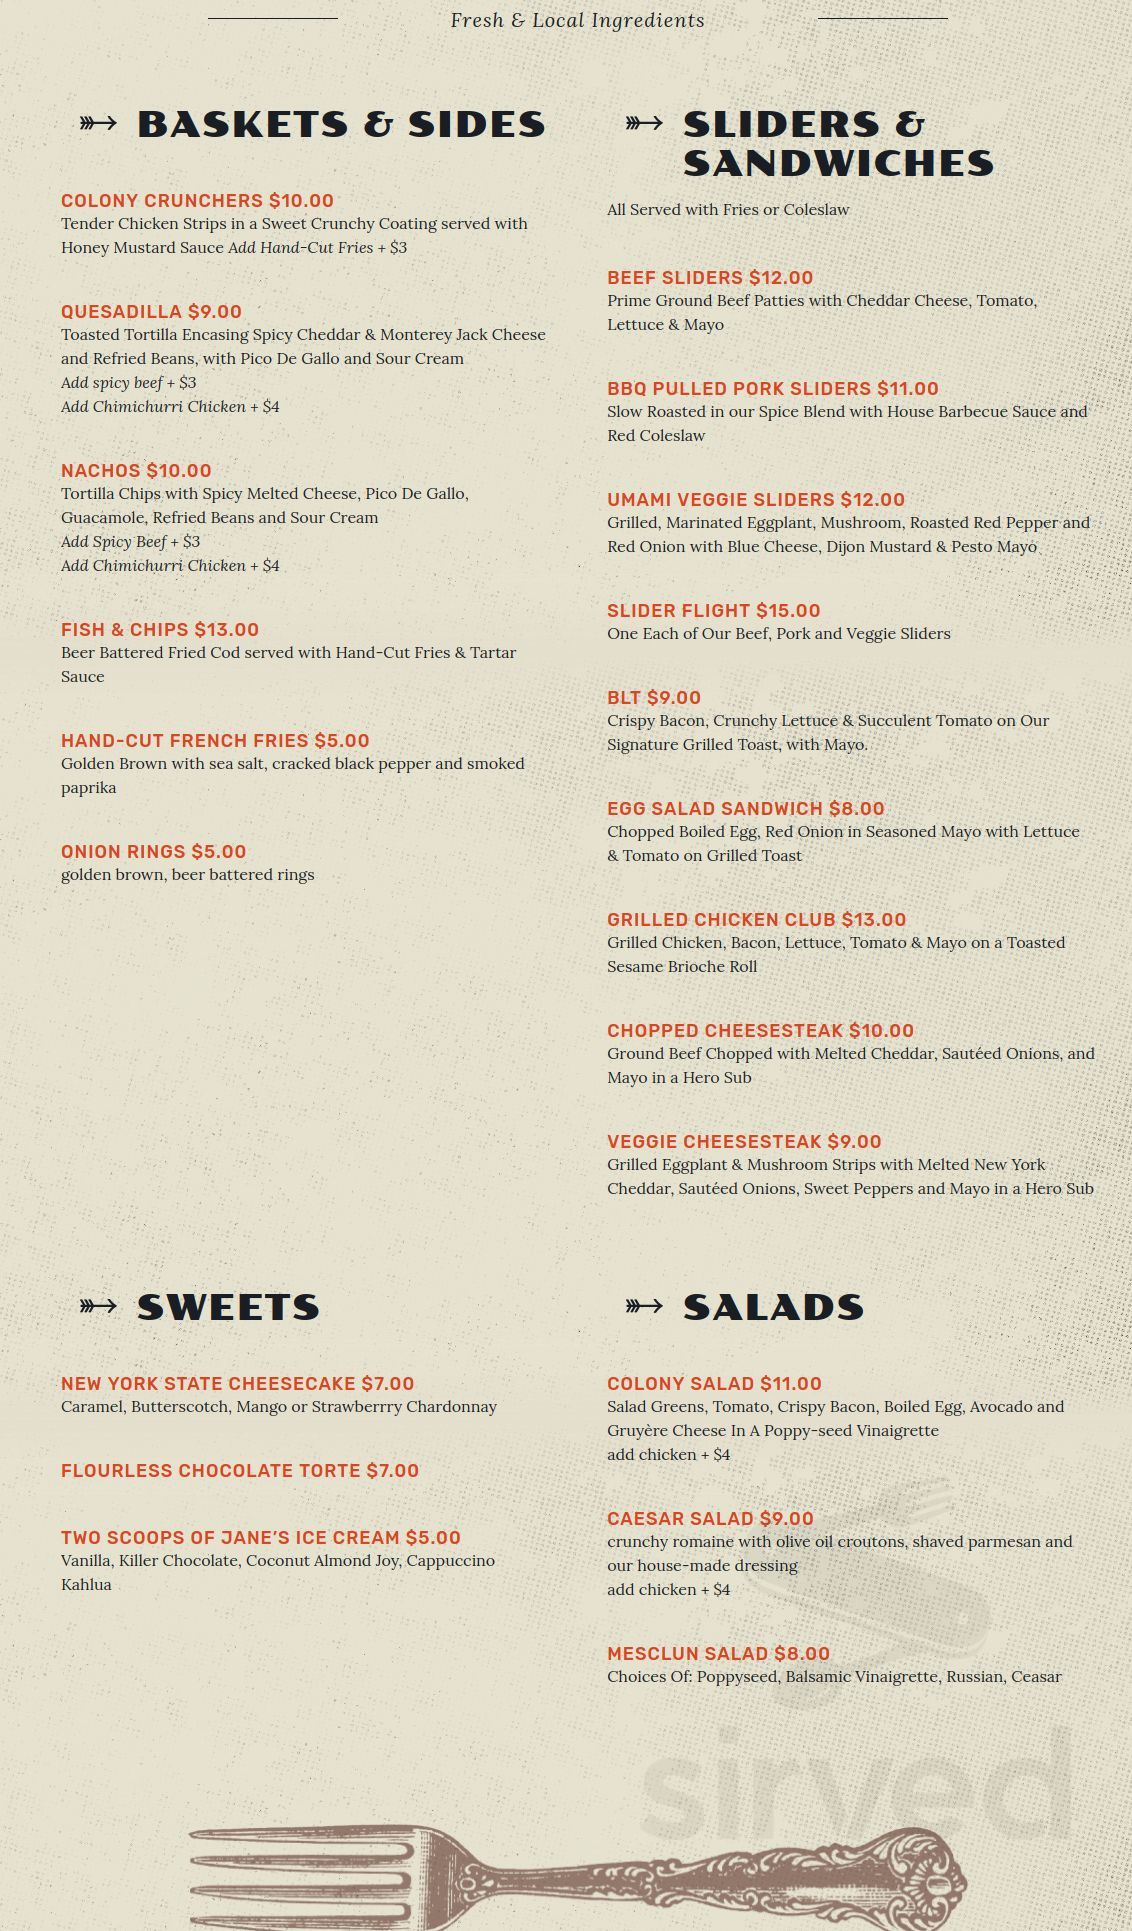 Menu for Colony in Woodstock, New York, USA